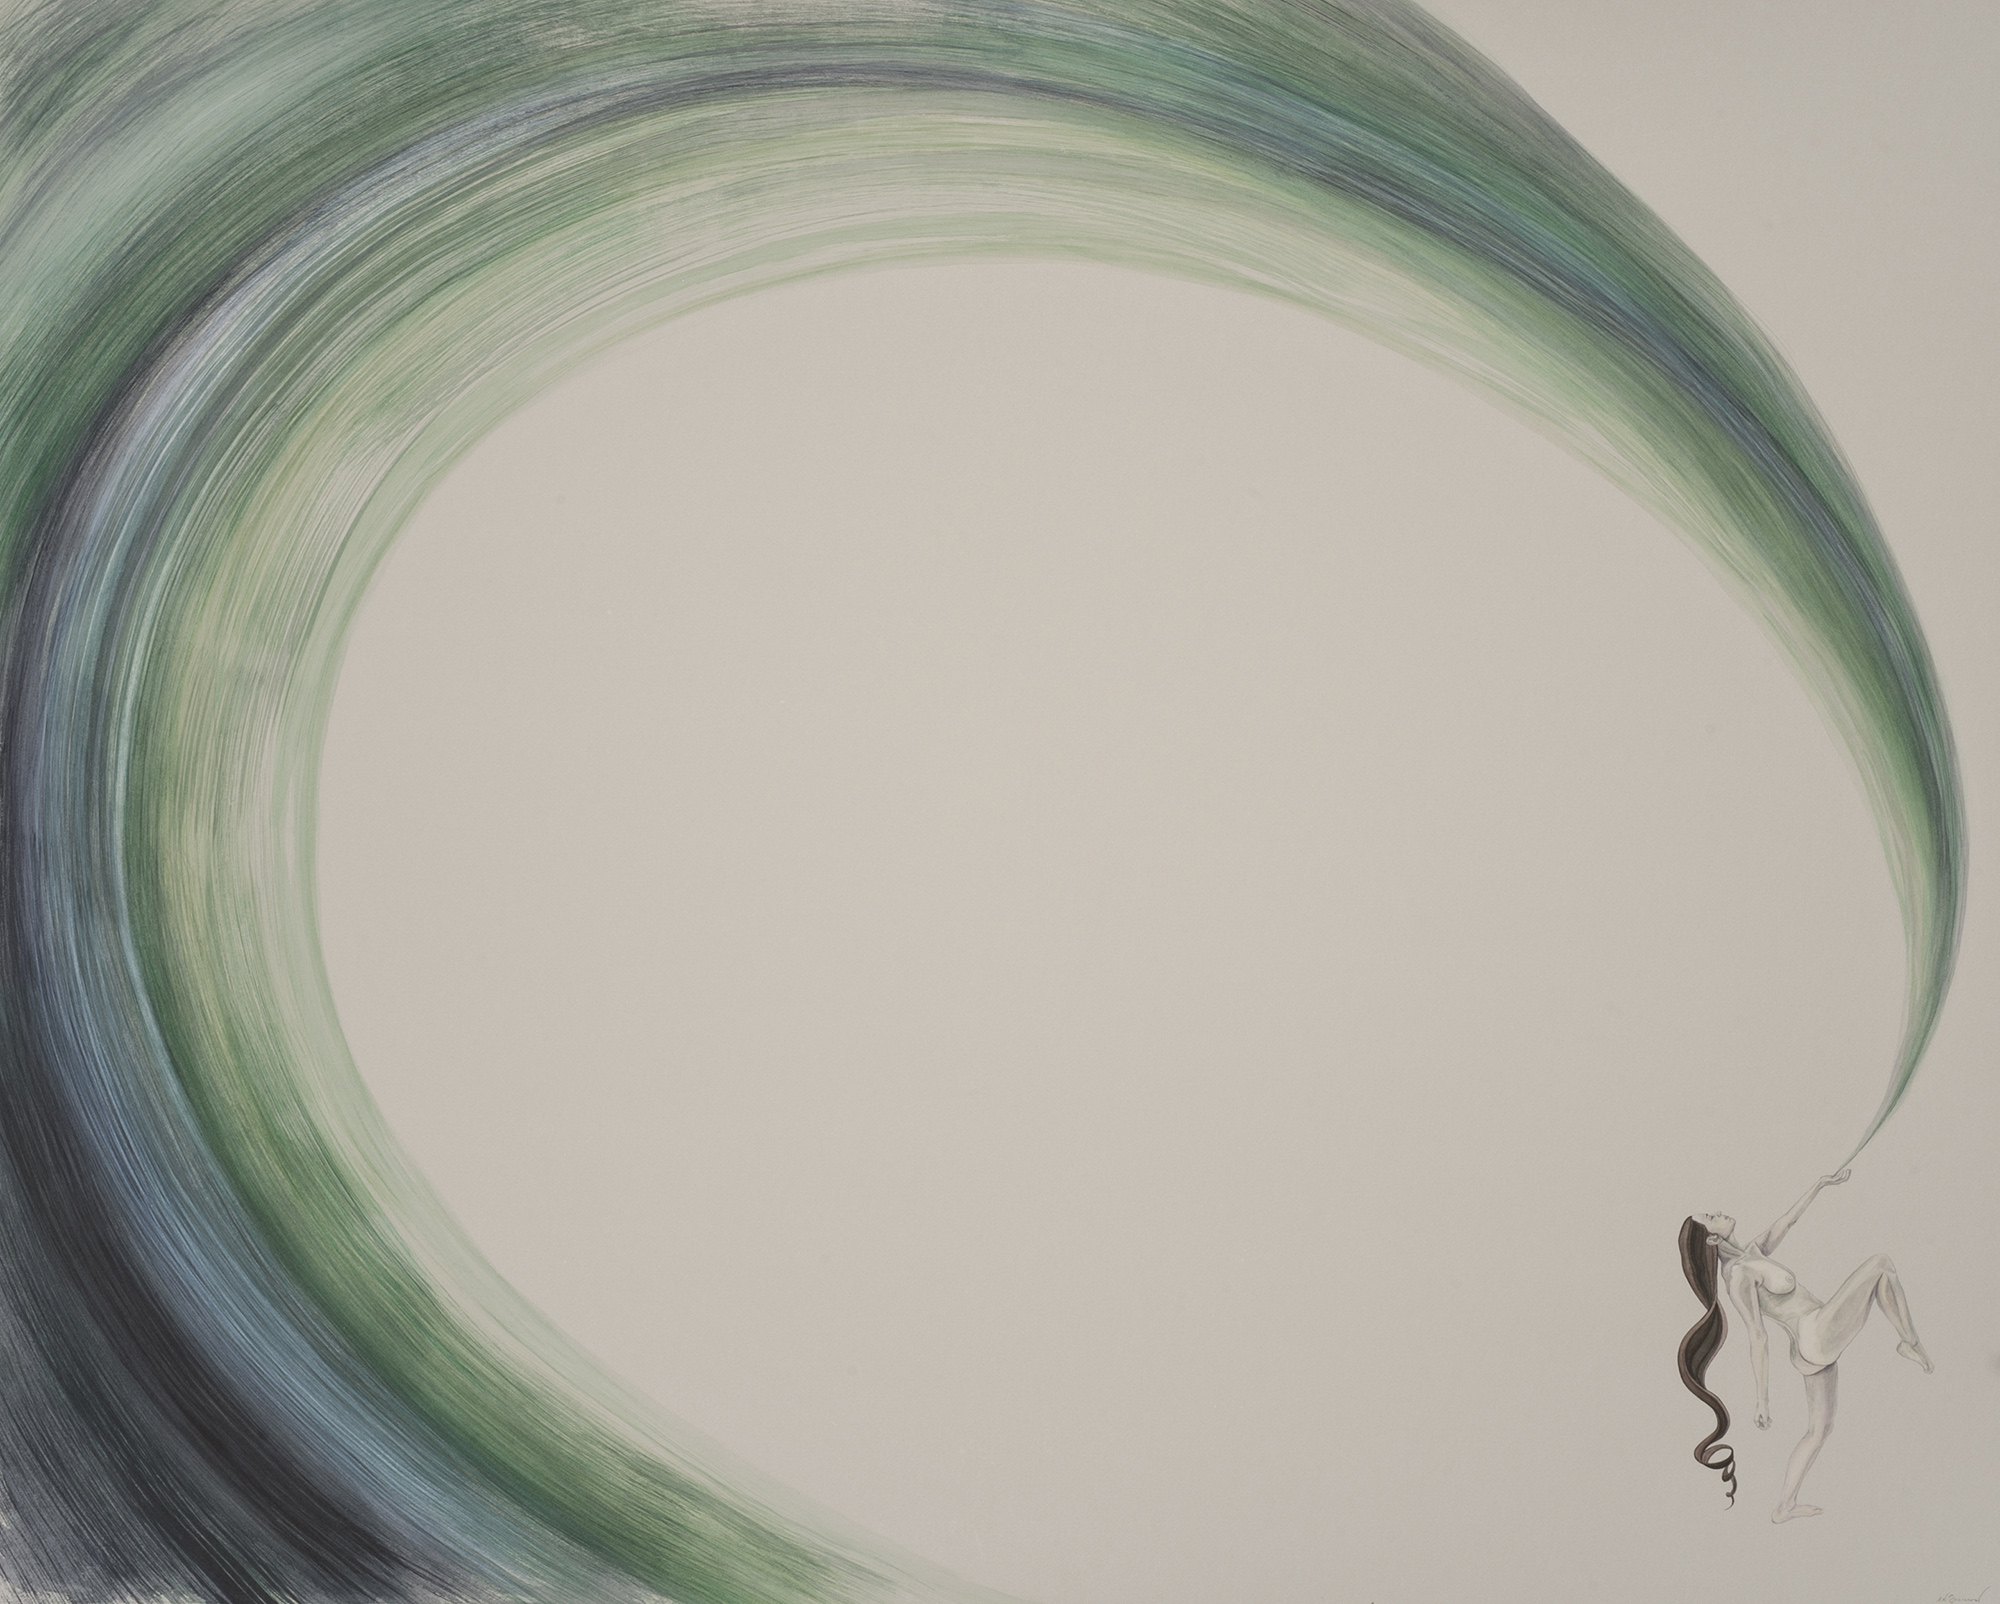 A marching woman releases a wave which forms a great nothing in the center of the composition